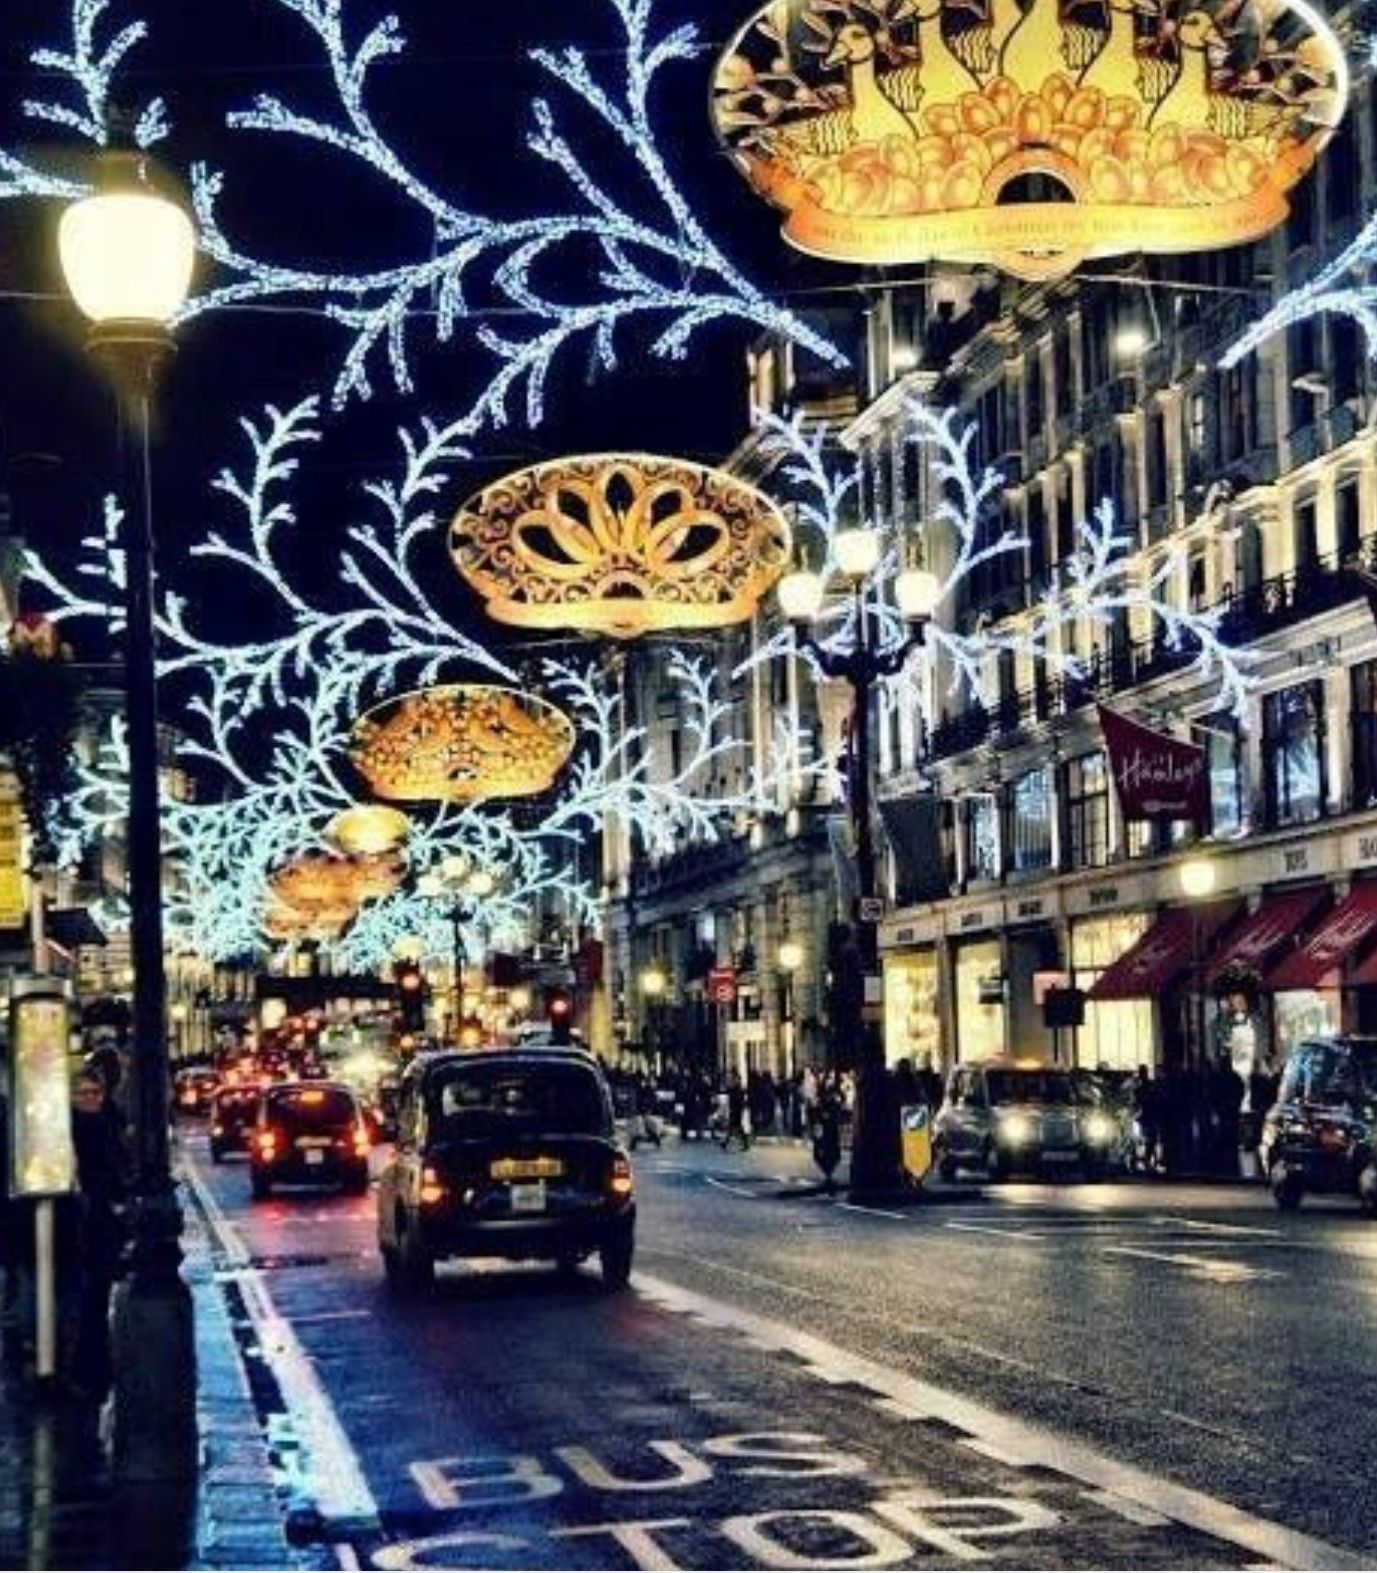 Oxford Street Weihnachtsbeleuchtung.Pin By Partnersjh On Explore London Christmas London London England